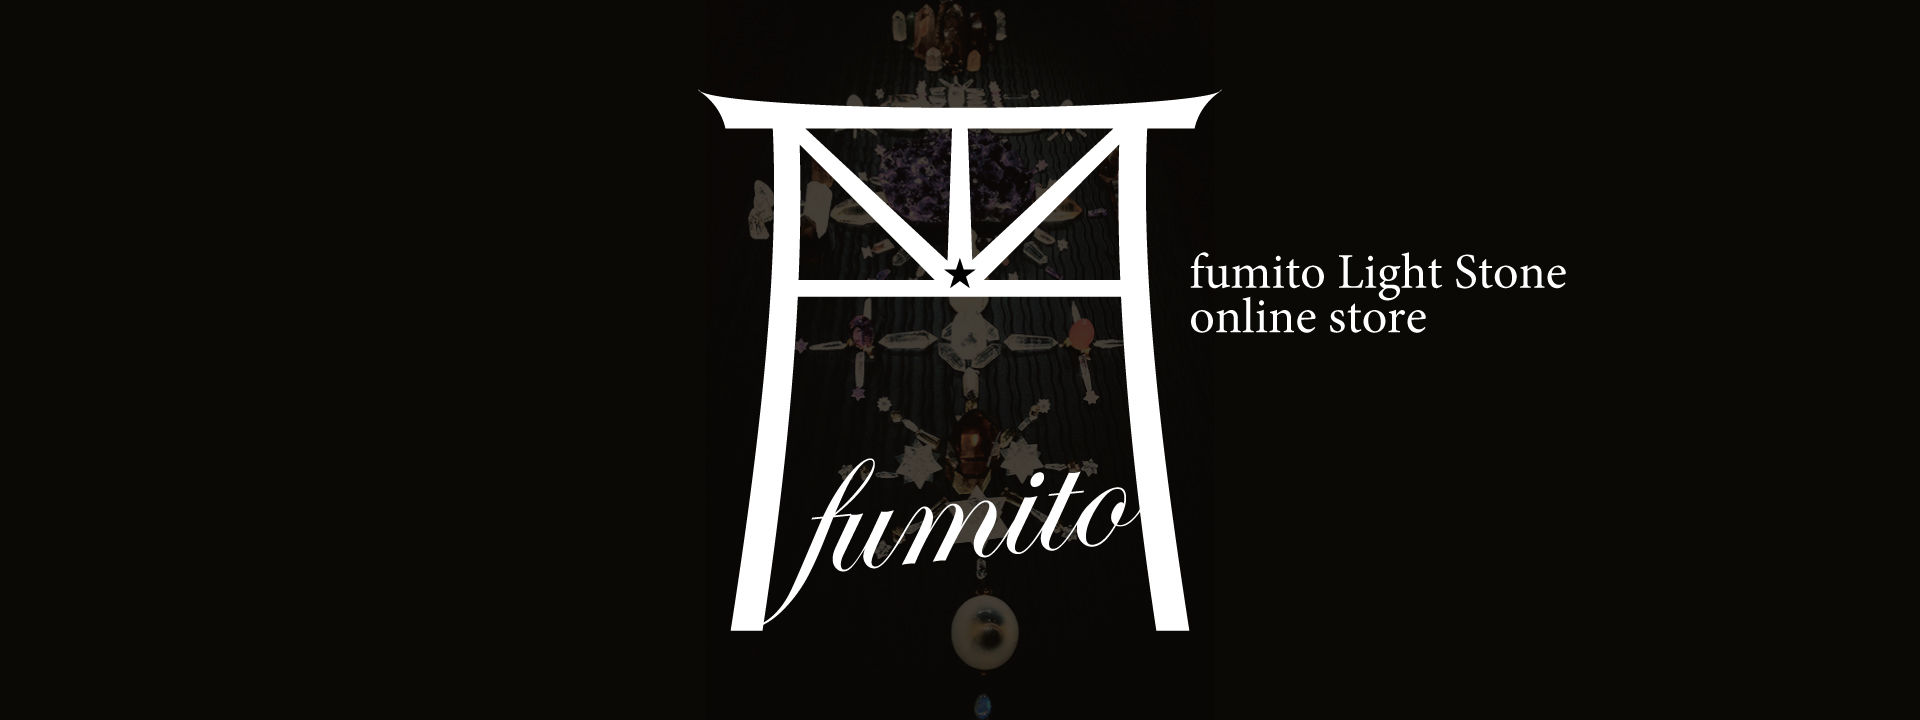 fumito Light Stone